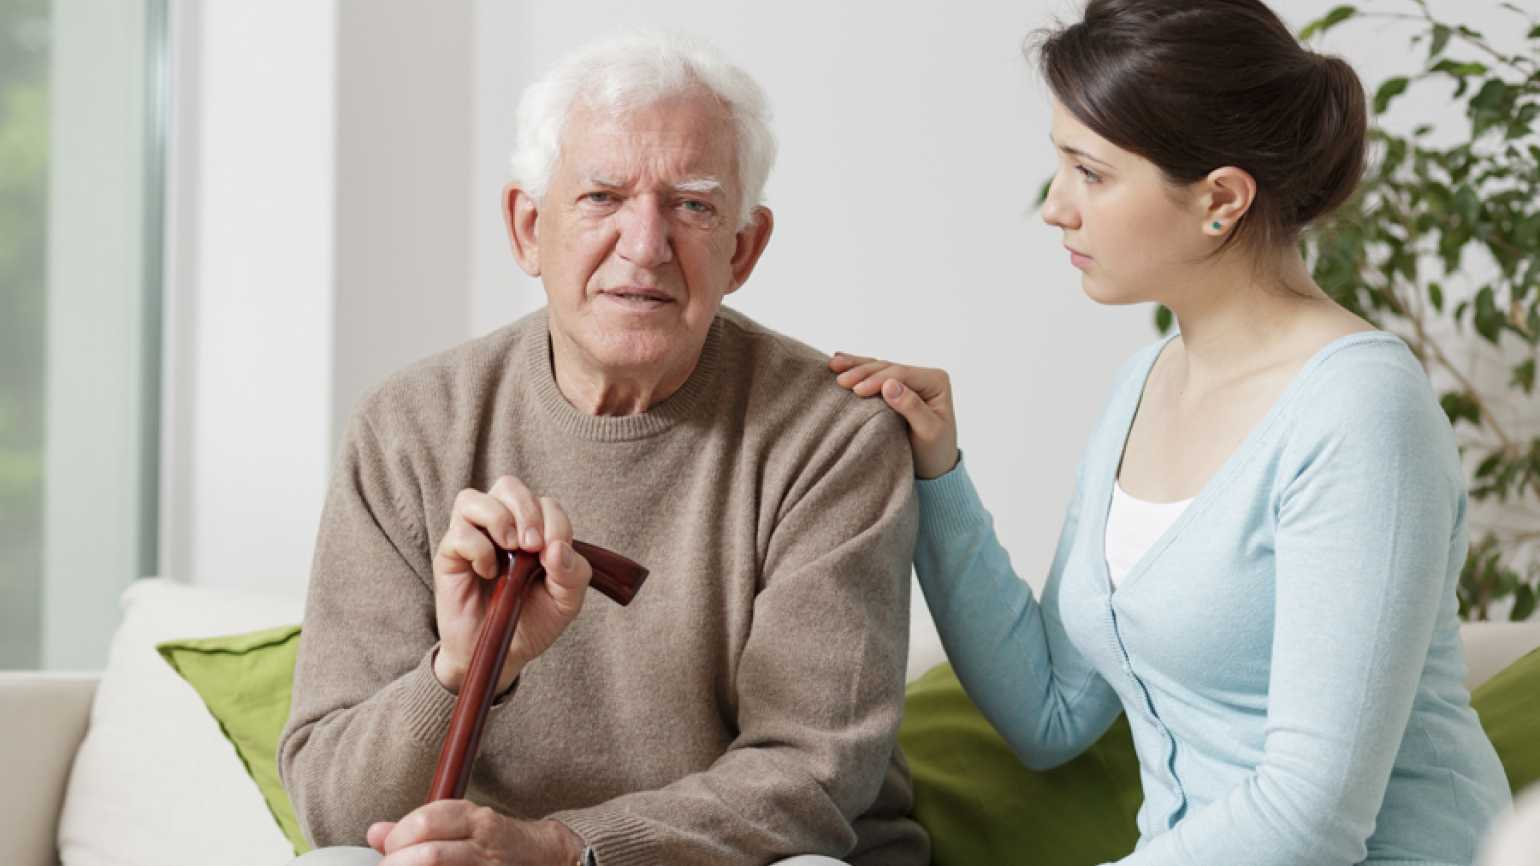 A young woman comforts an ailing older man in his home